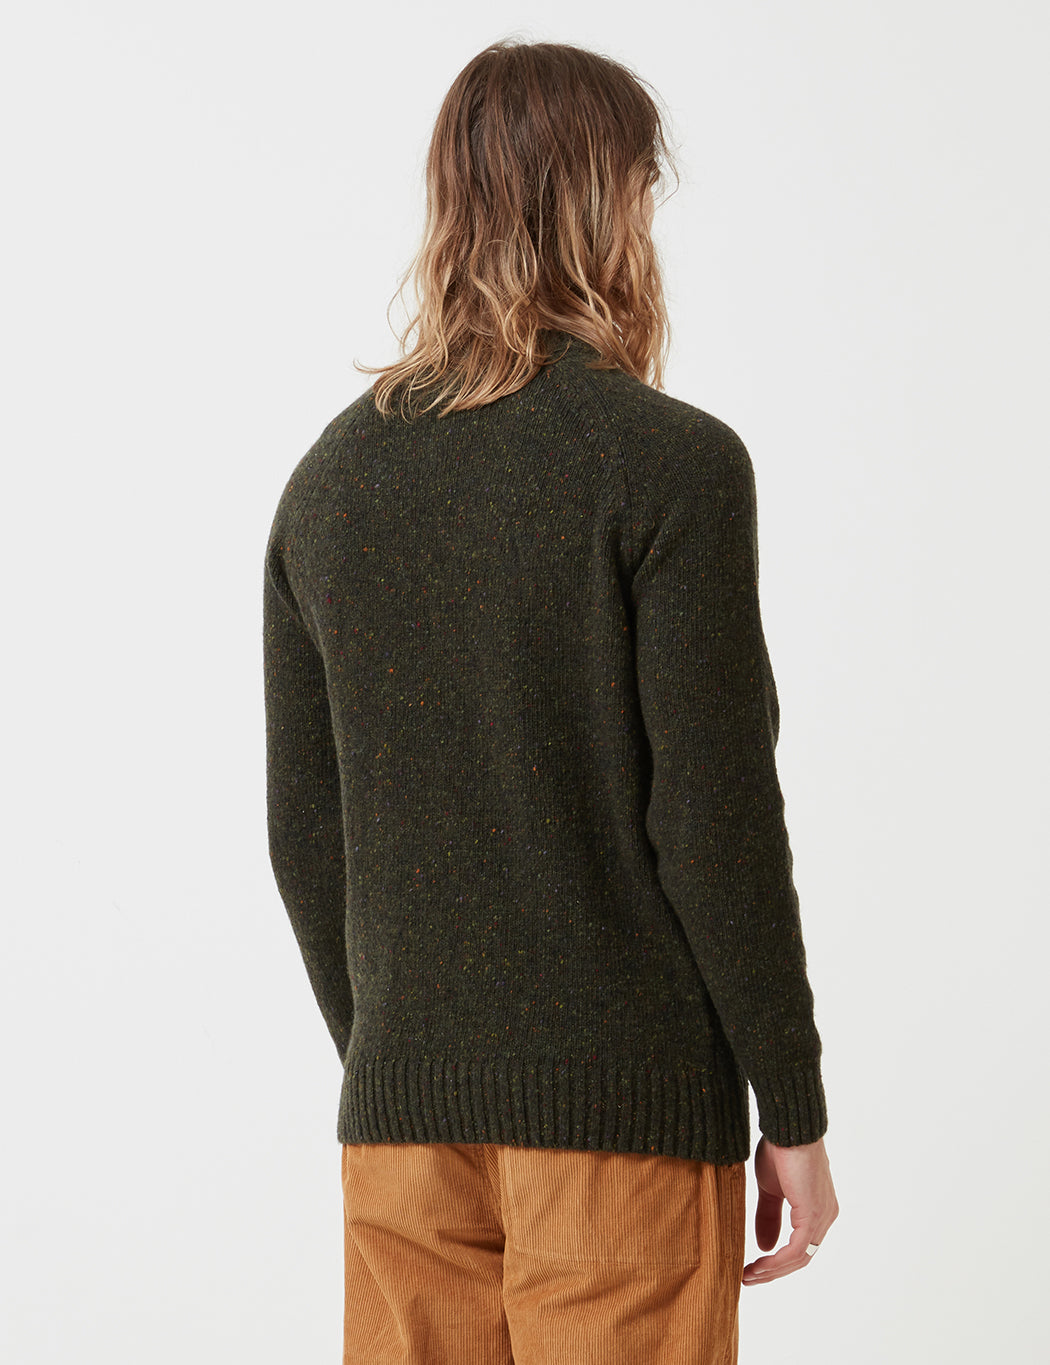 Barbour Netherton Crew Neck Knit - Forest